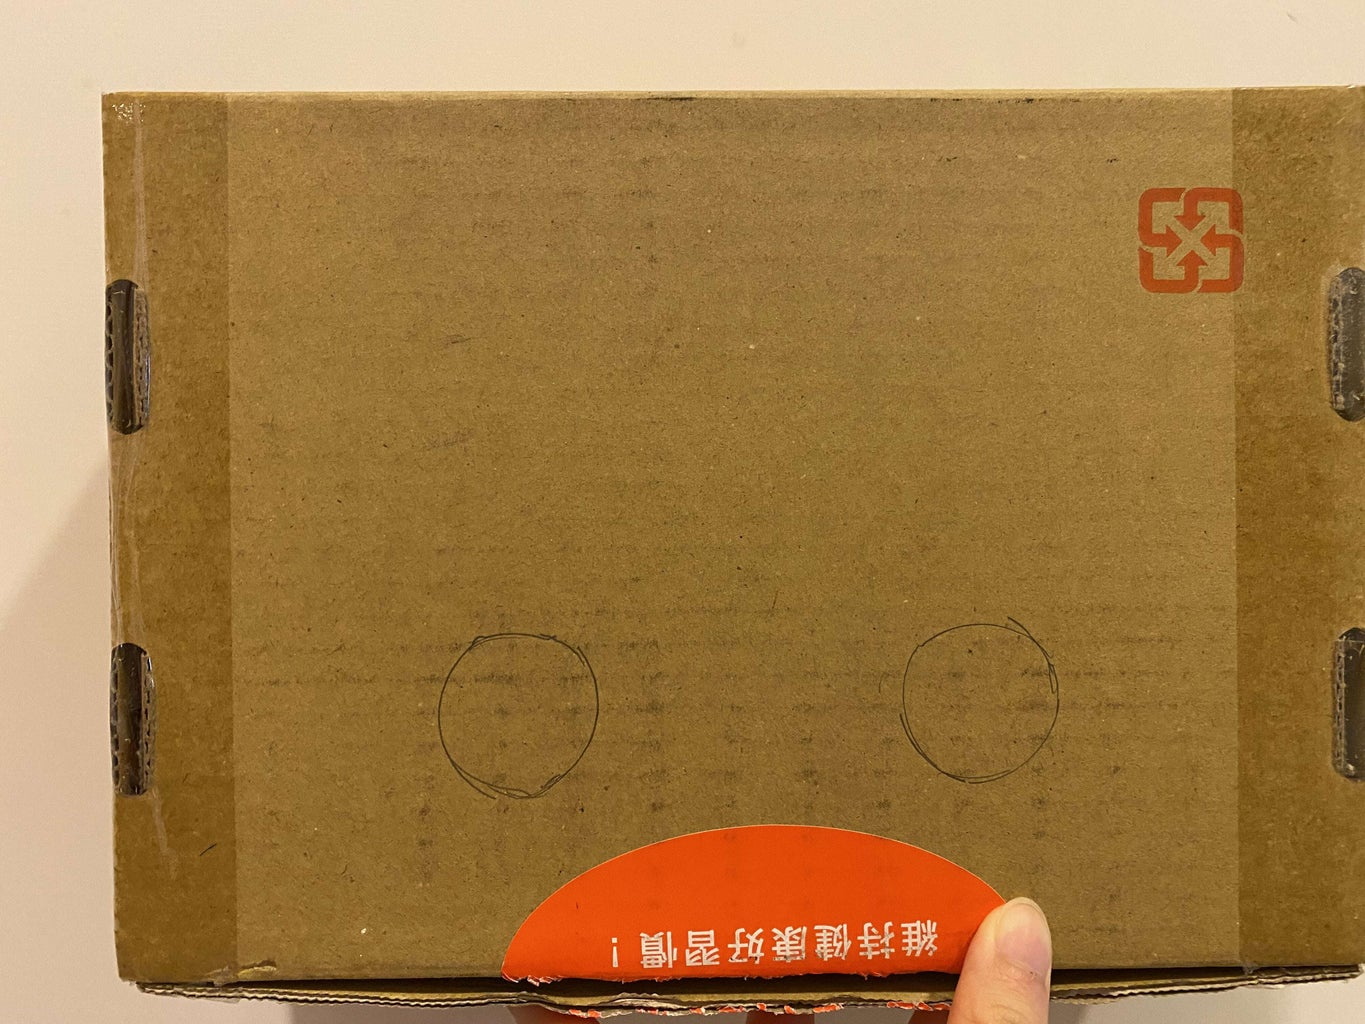 Cut Two Holes on the Box for the Button's Placement